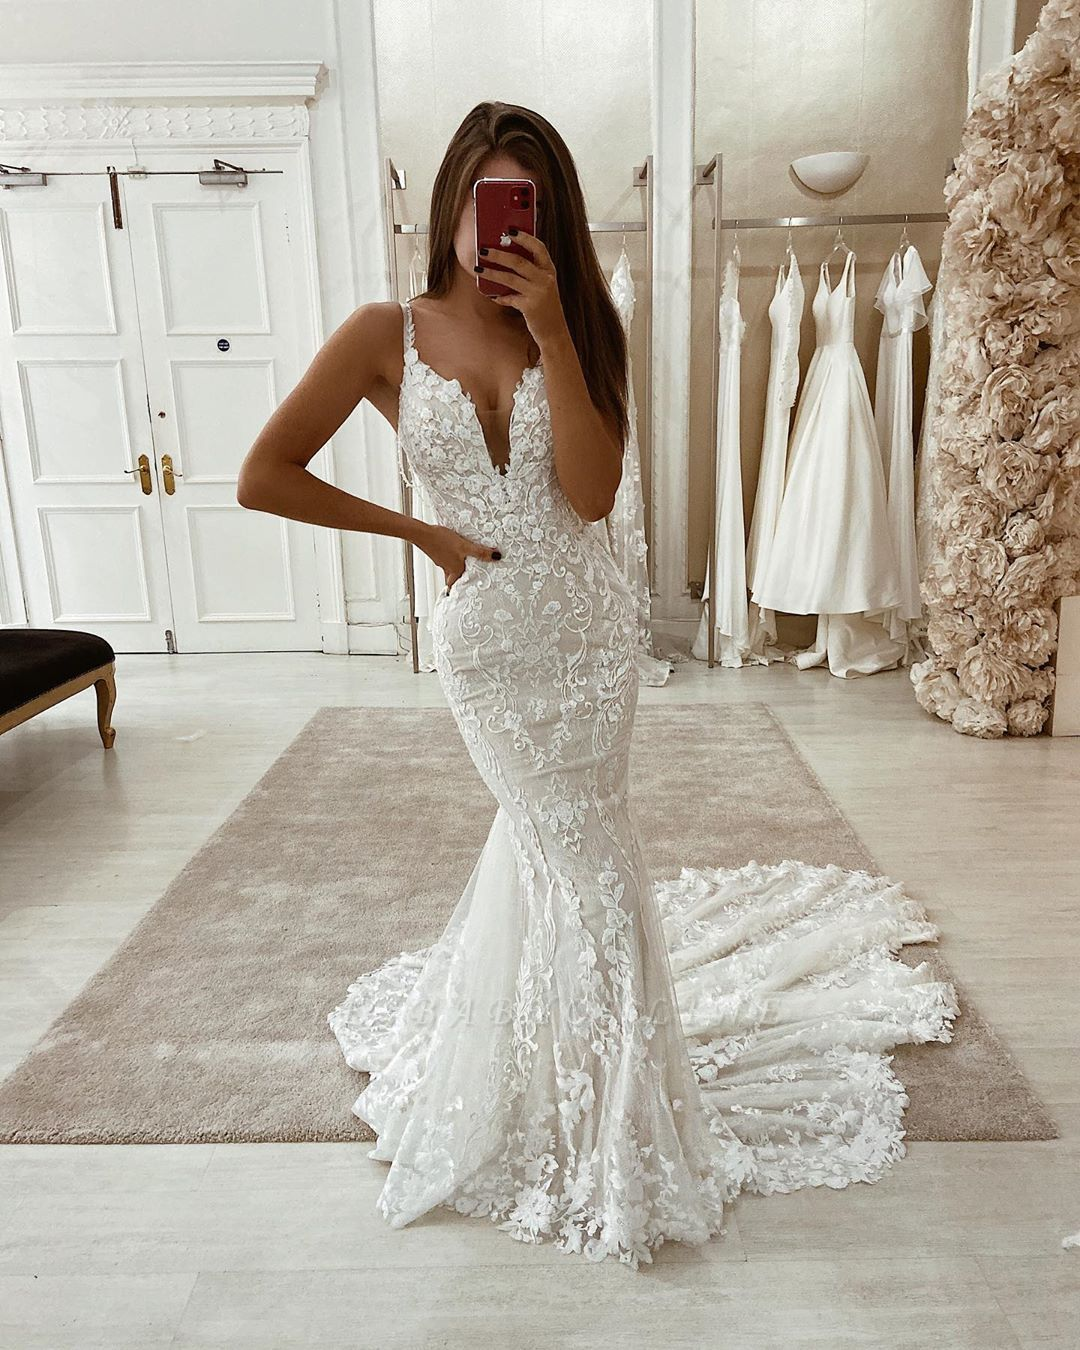 Spaghetti Straps Lace Fit And Flare Wedding Dresses With Detachable Overskirt Yesbabyonline Com